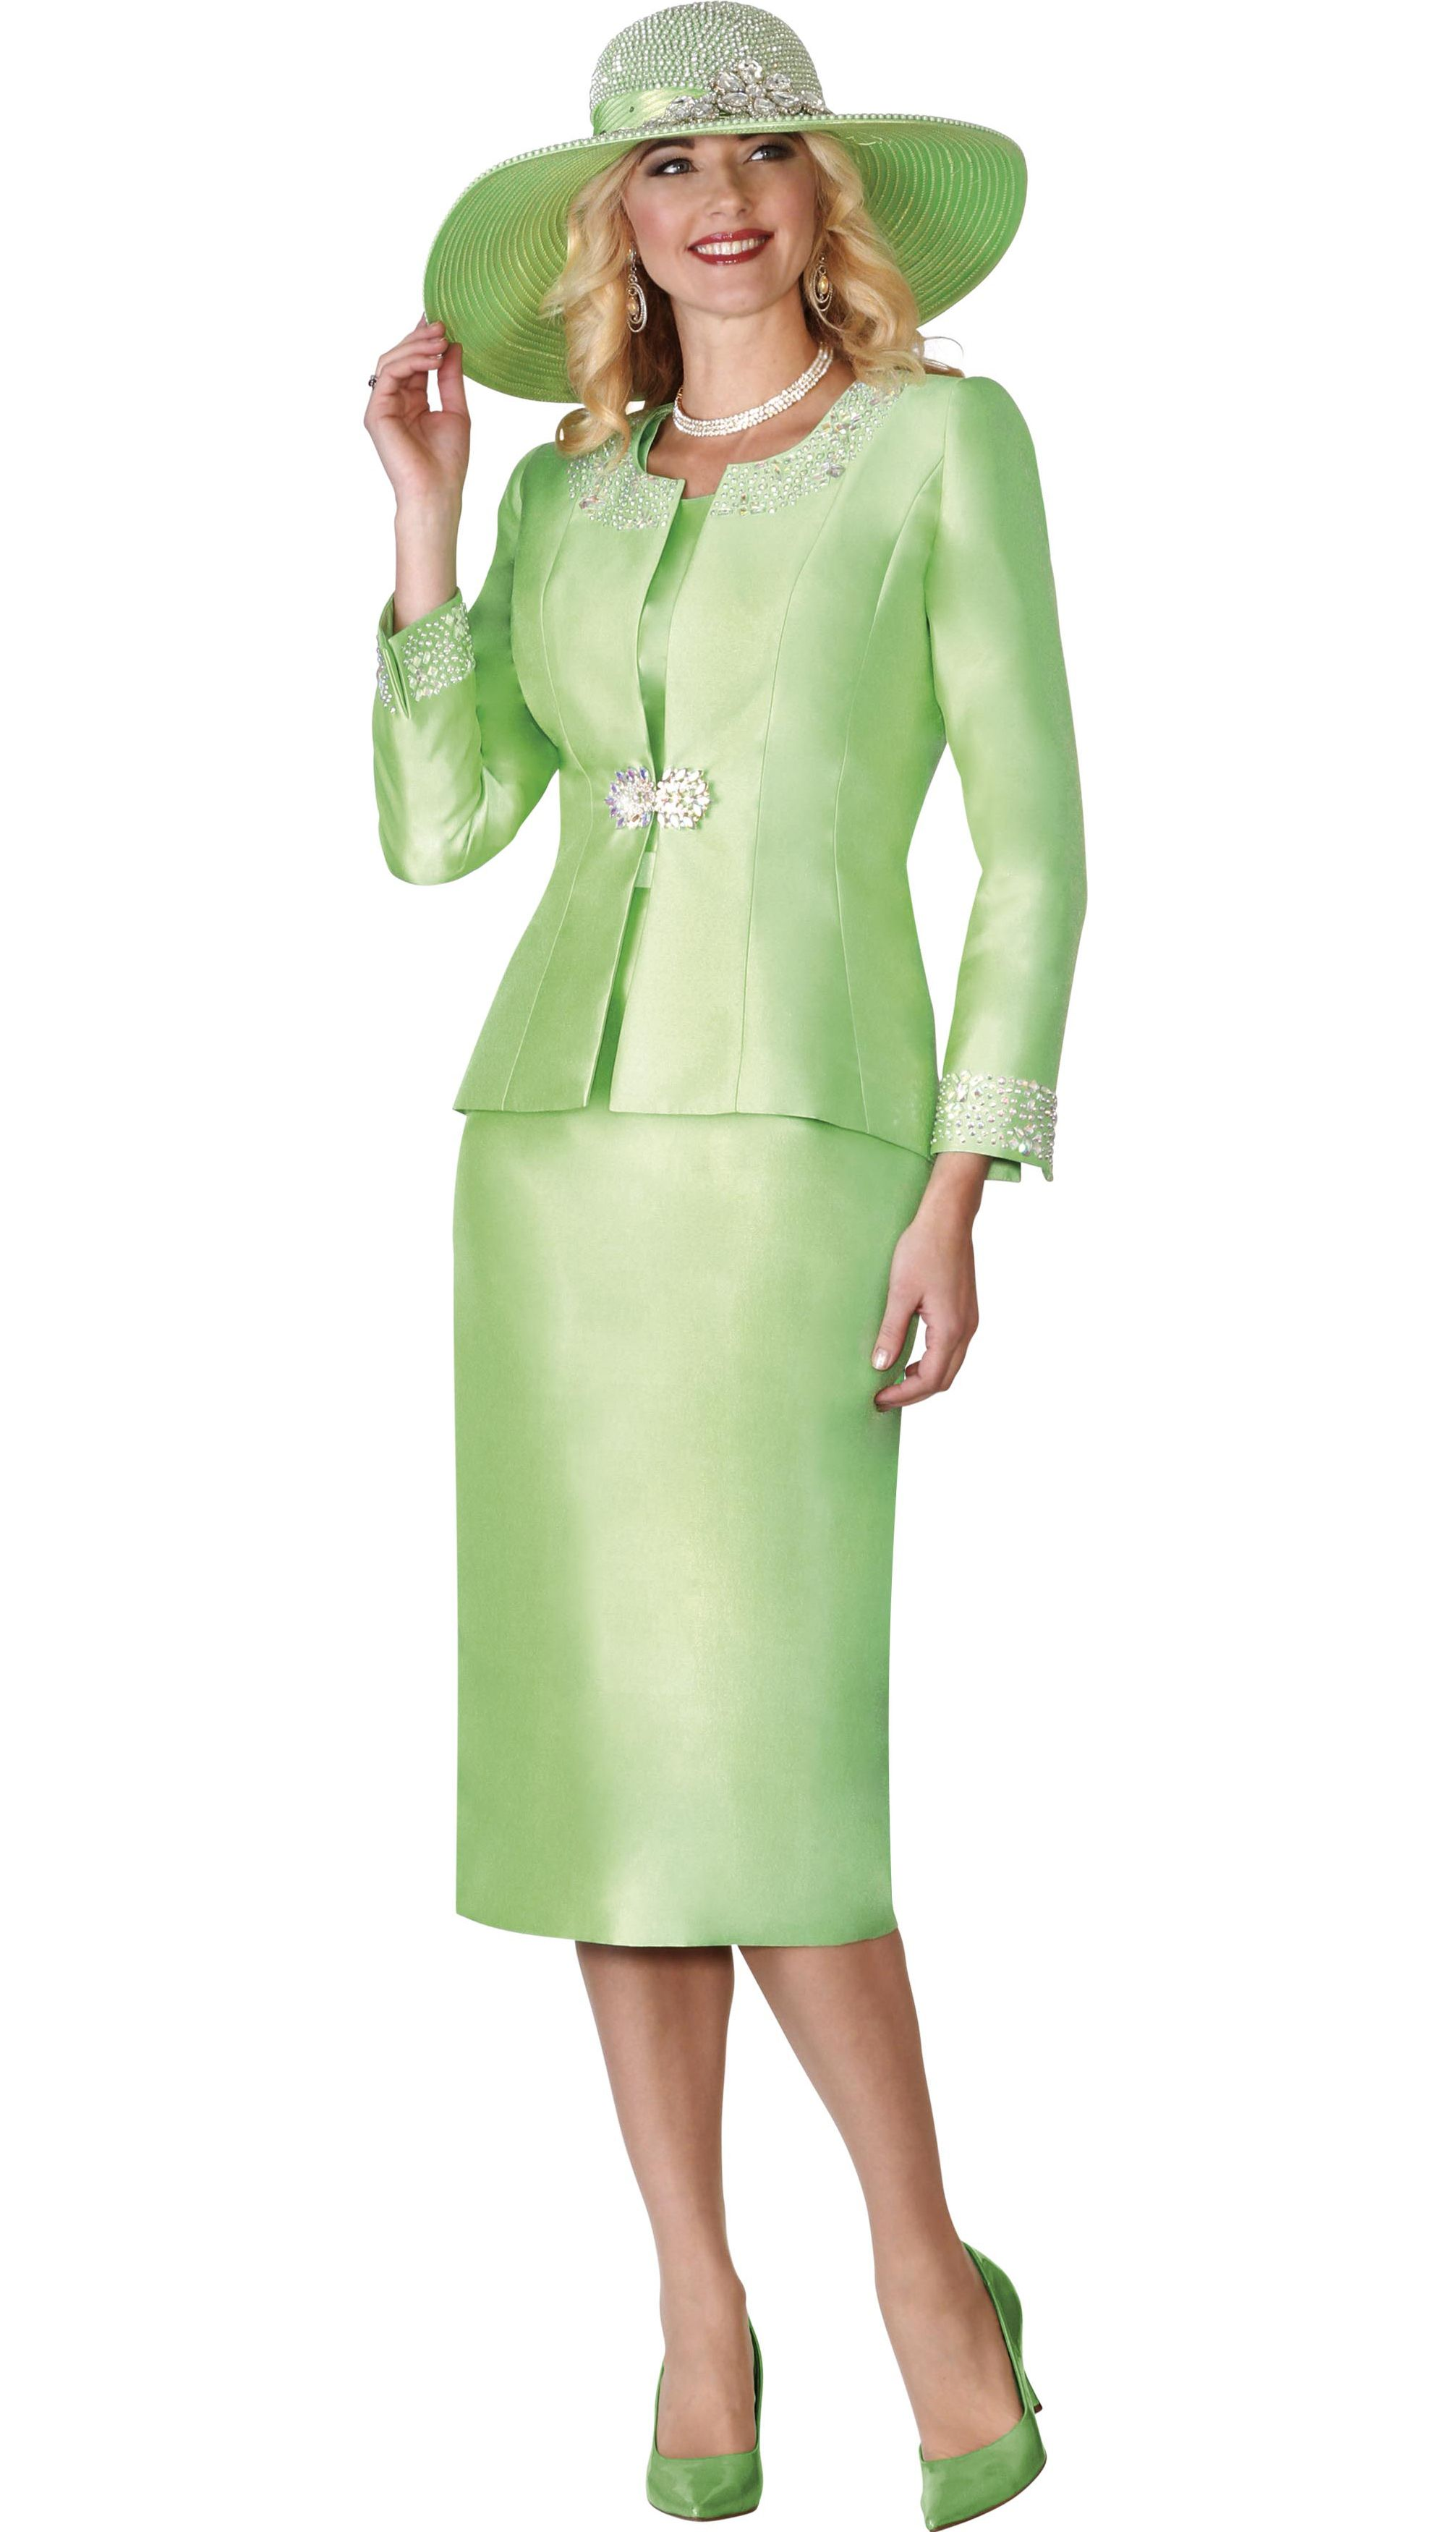 2f2c0715ba643 Style Lily and Taylor 3800 3 Piece Womens Skirt Suit With Embellished Jacket  Colors Paris Green Wine White Silver Melon Kiwi Black Sizes 4 6 8 10 12 14  16 ...